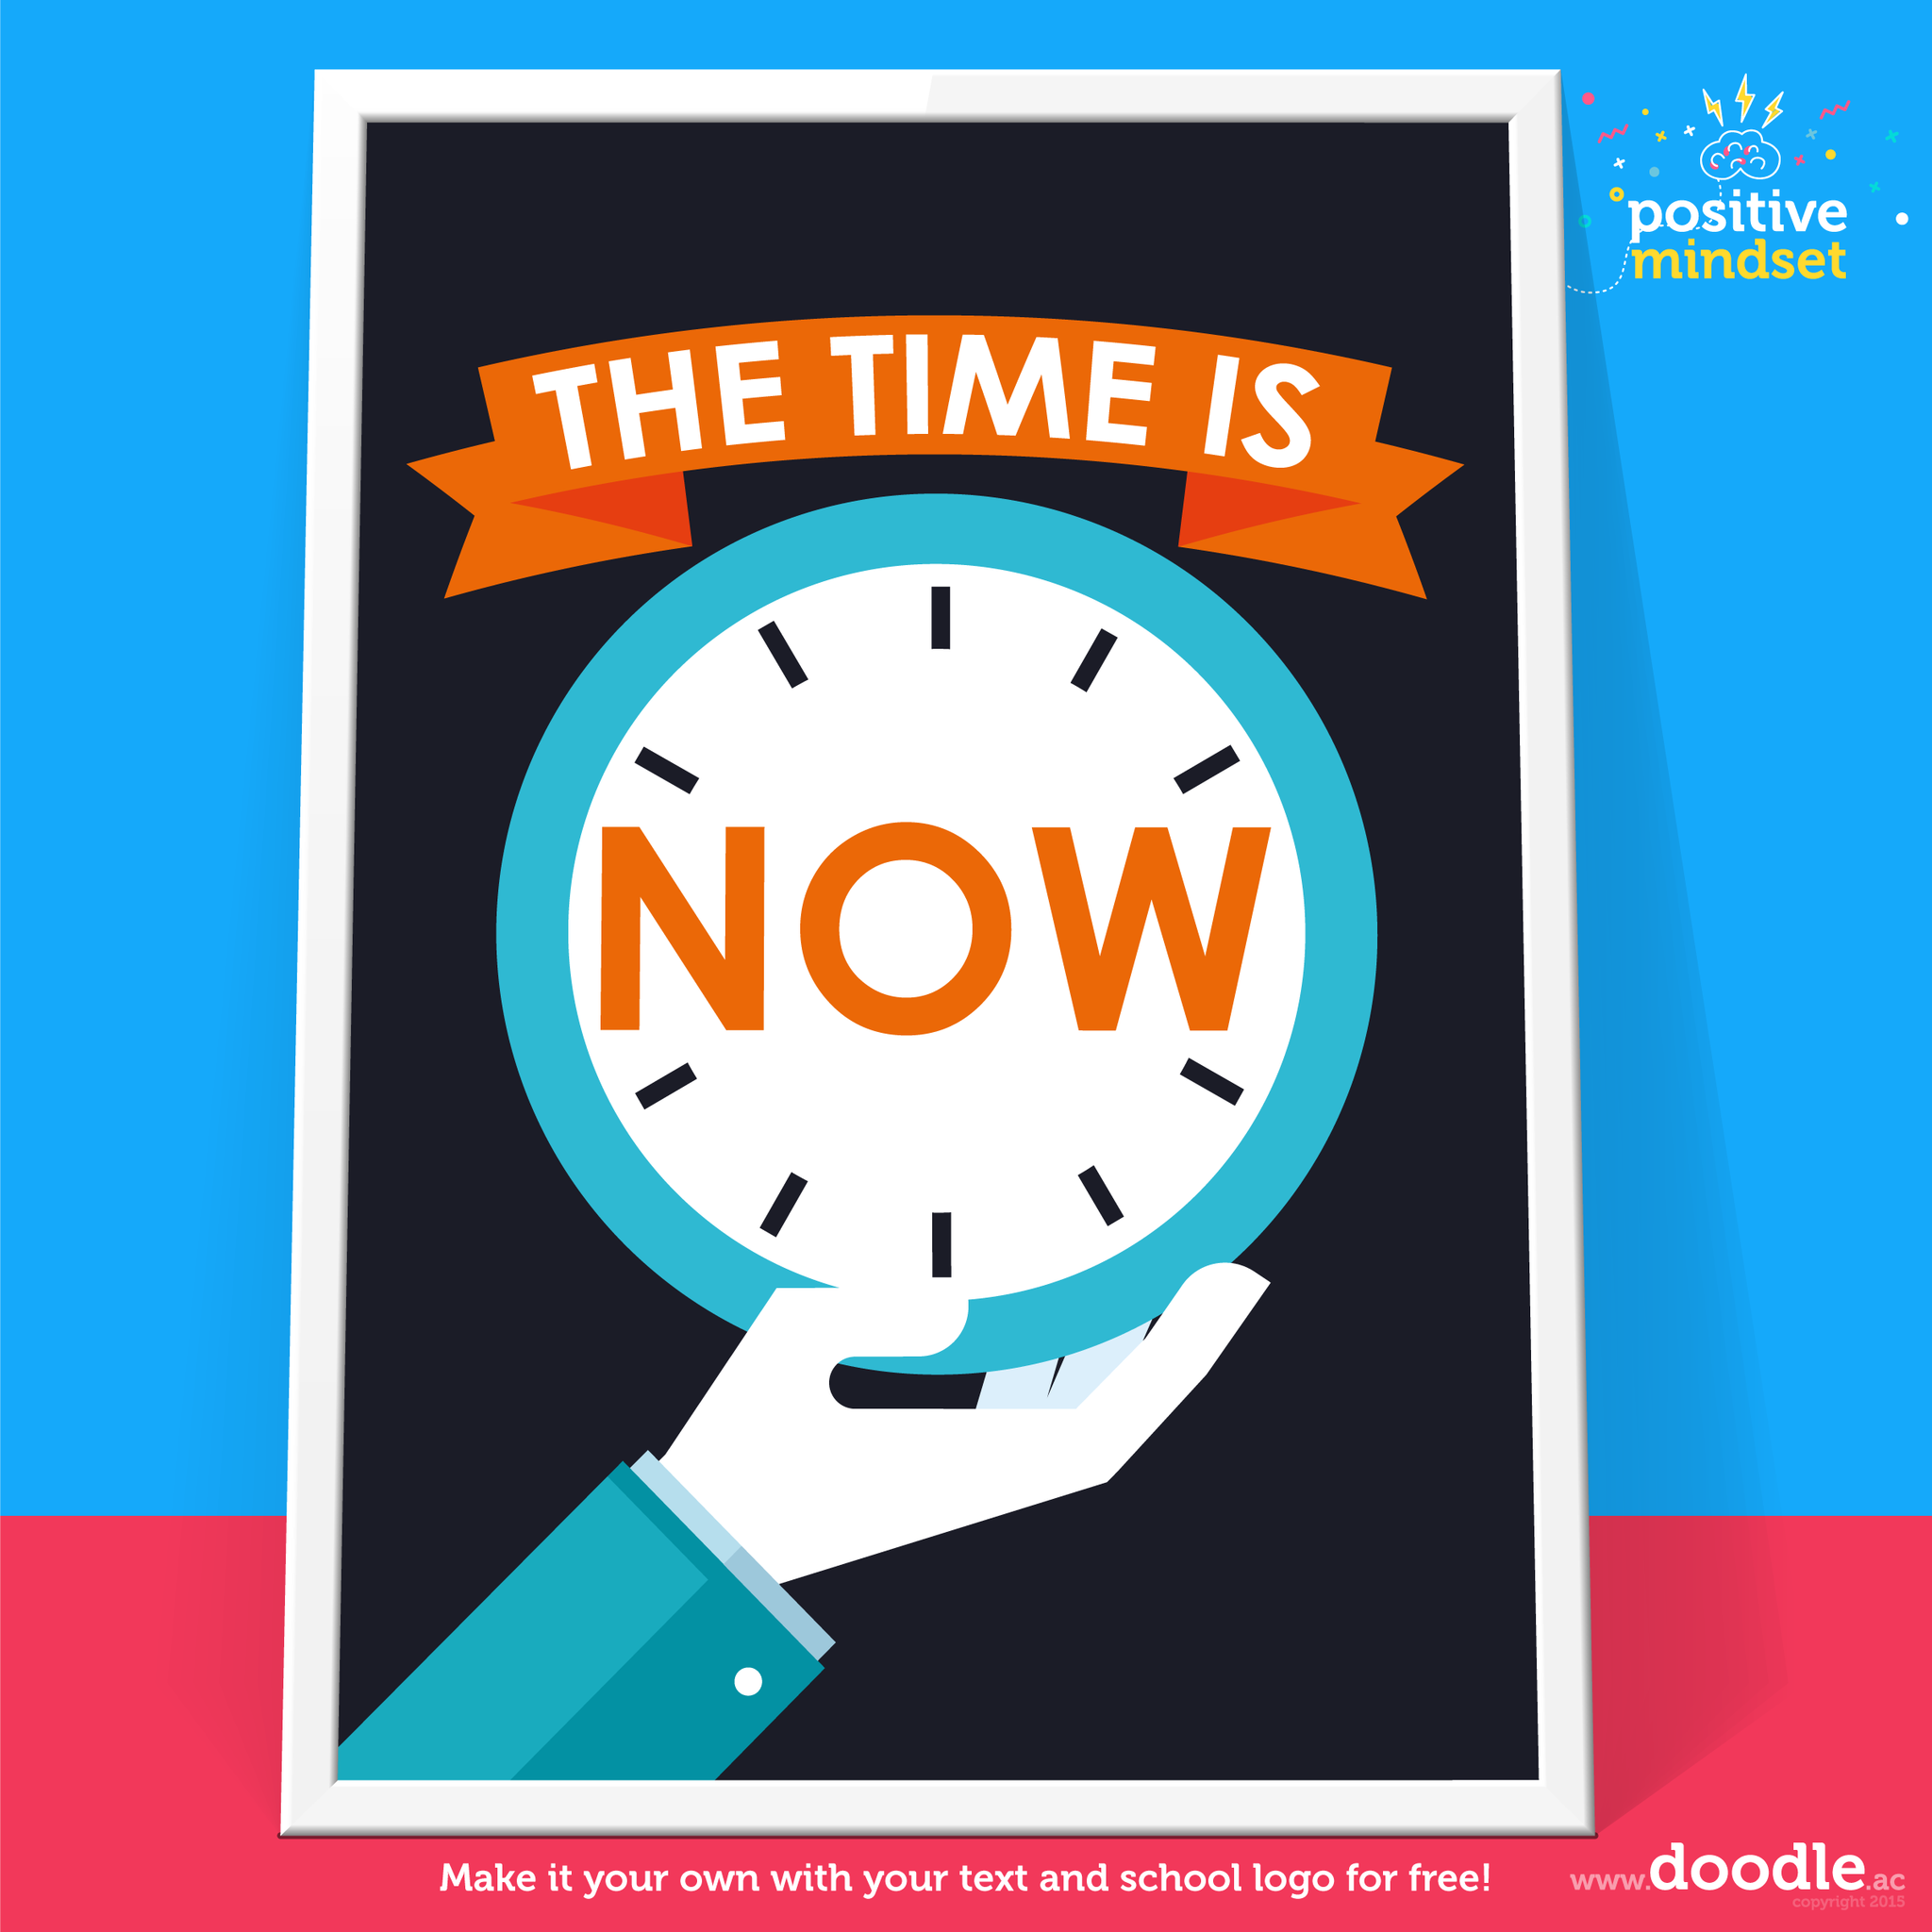 The time is now poster – doodle